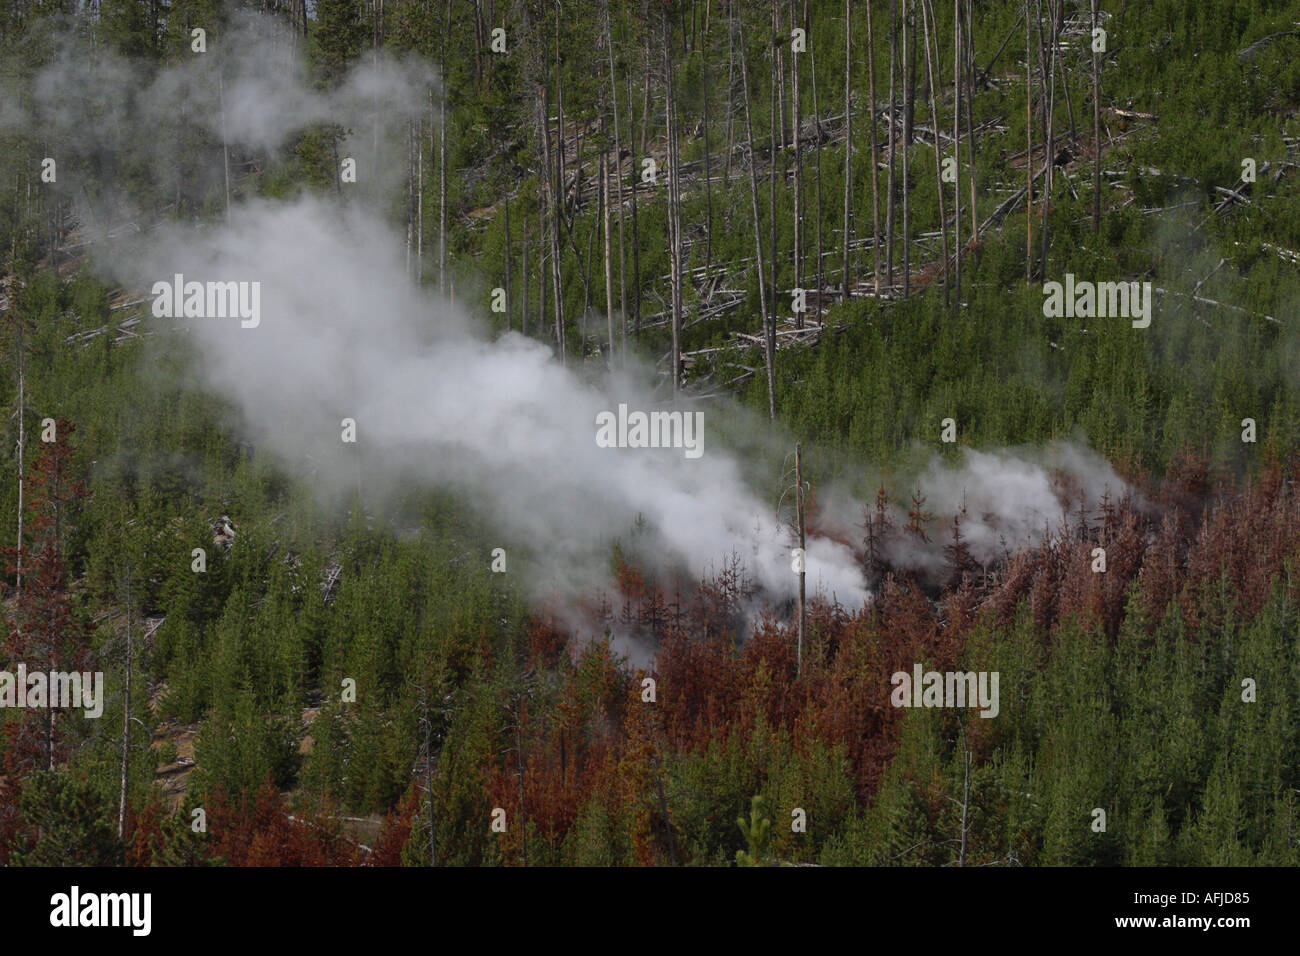 Smoke from fire in pine forest Yellowstone Nat Pk USA - Stock Image